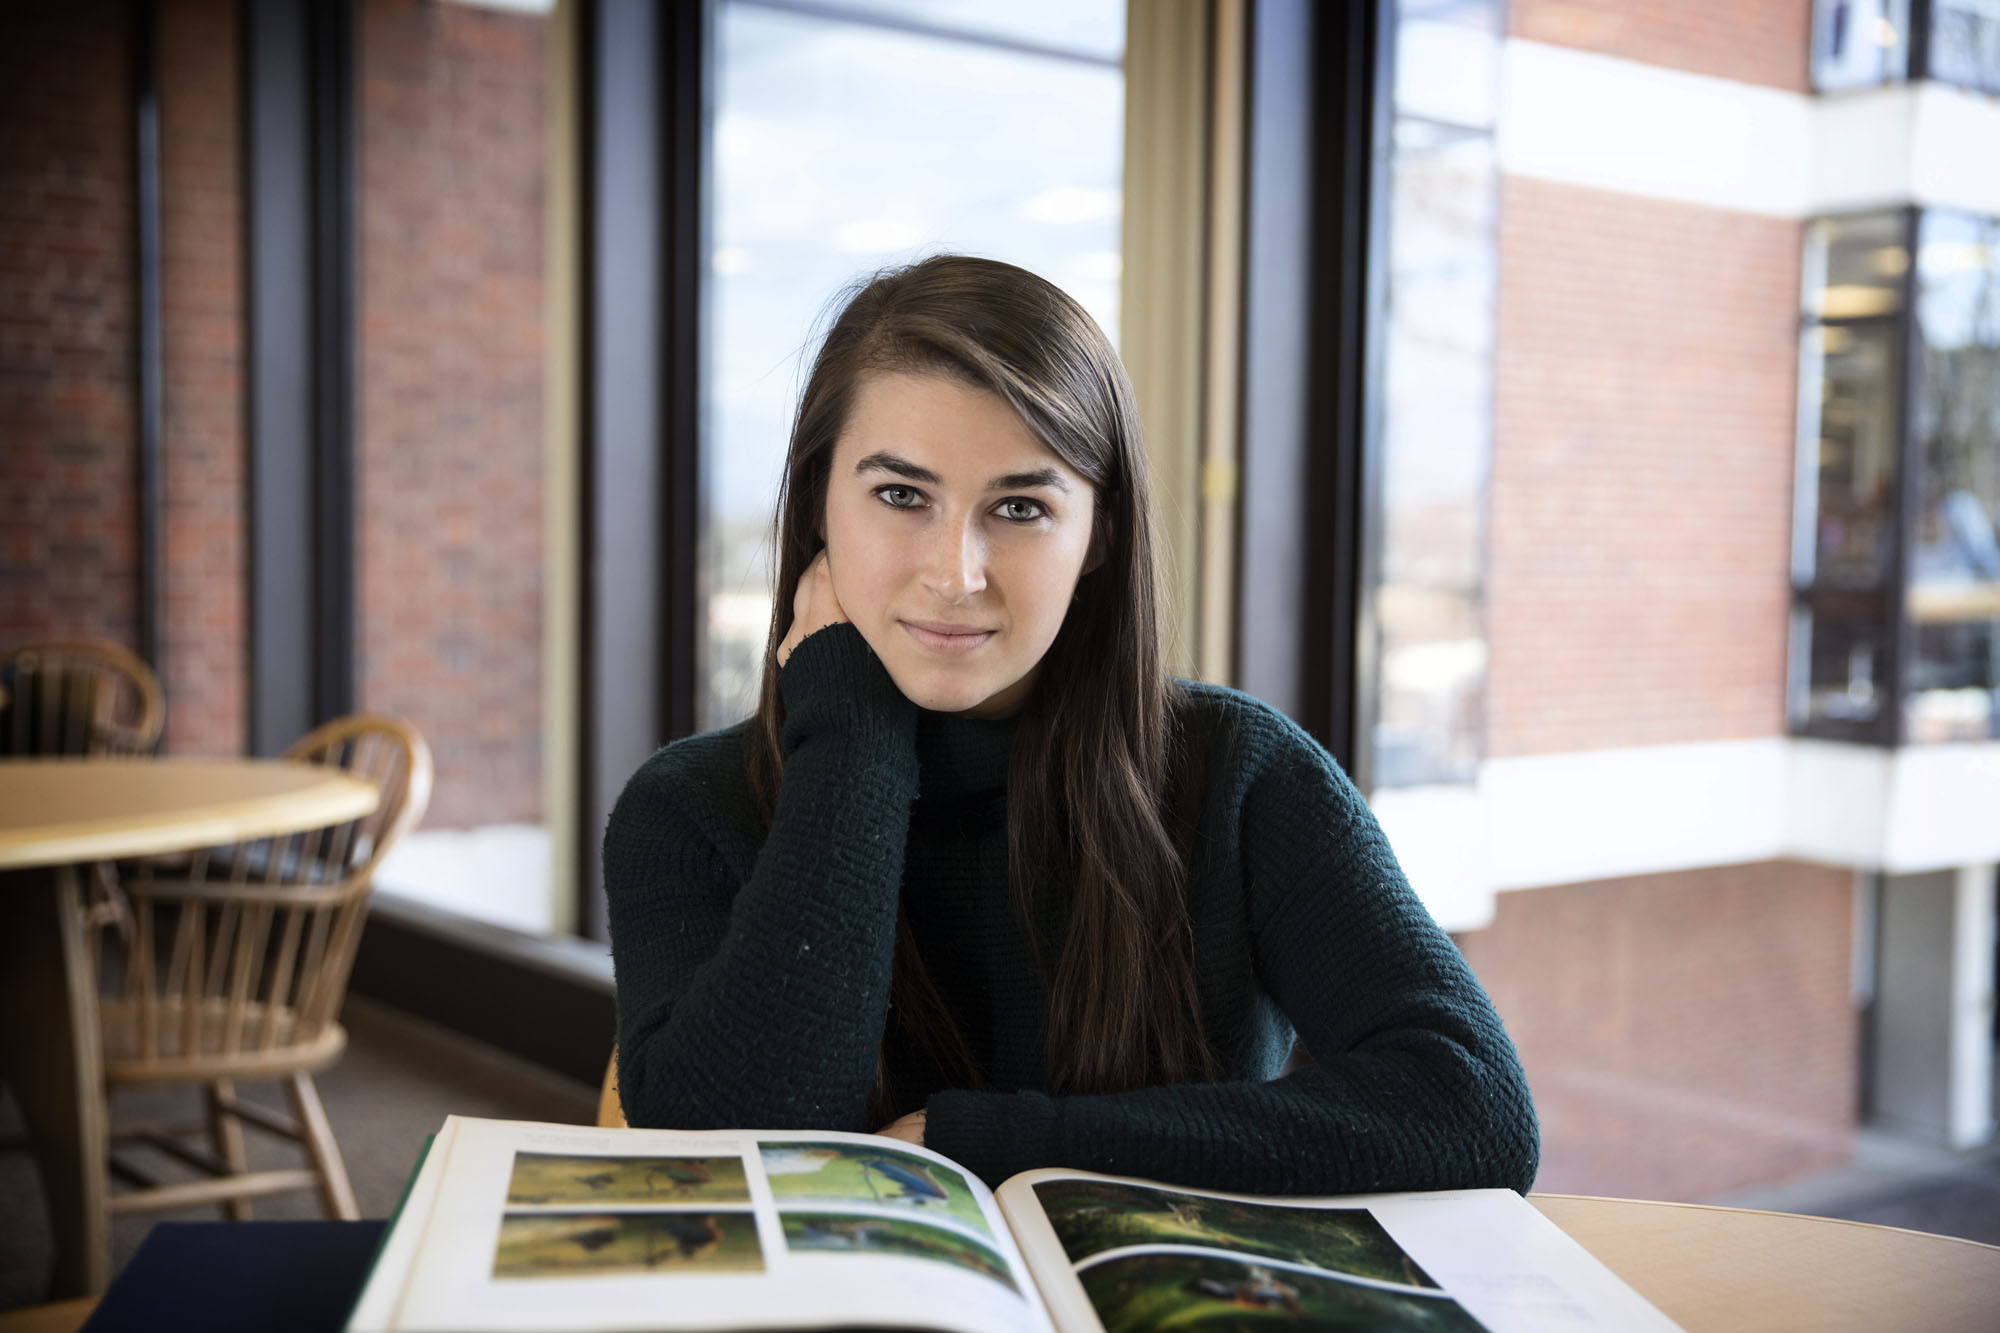 Emily Cox used her undergraduate research award to study Camille Pissarro's art.